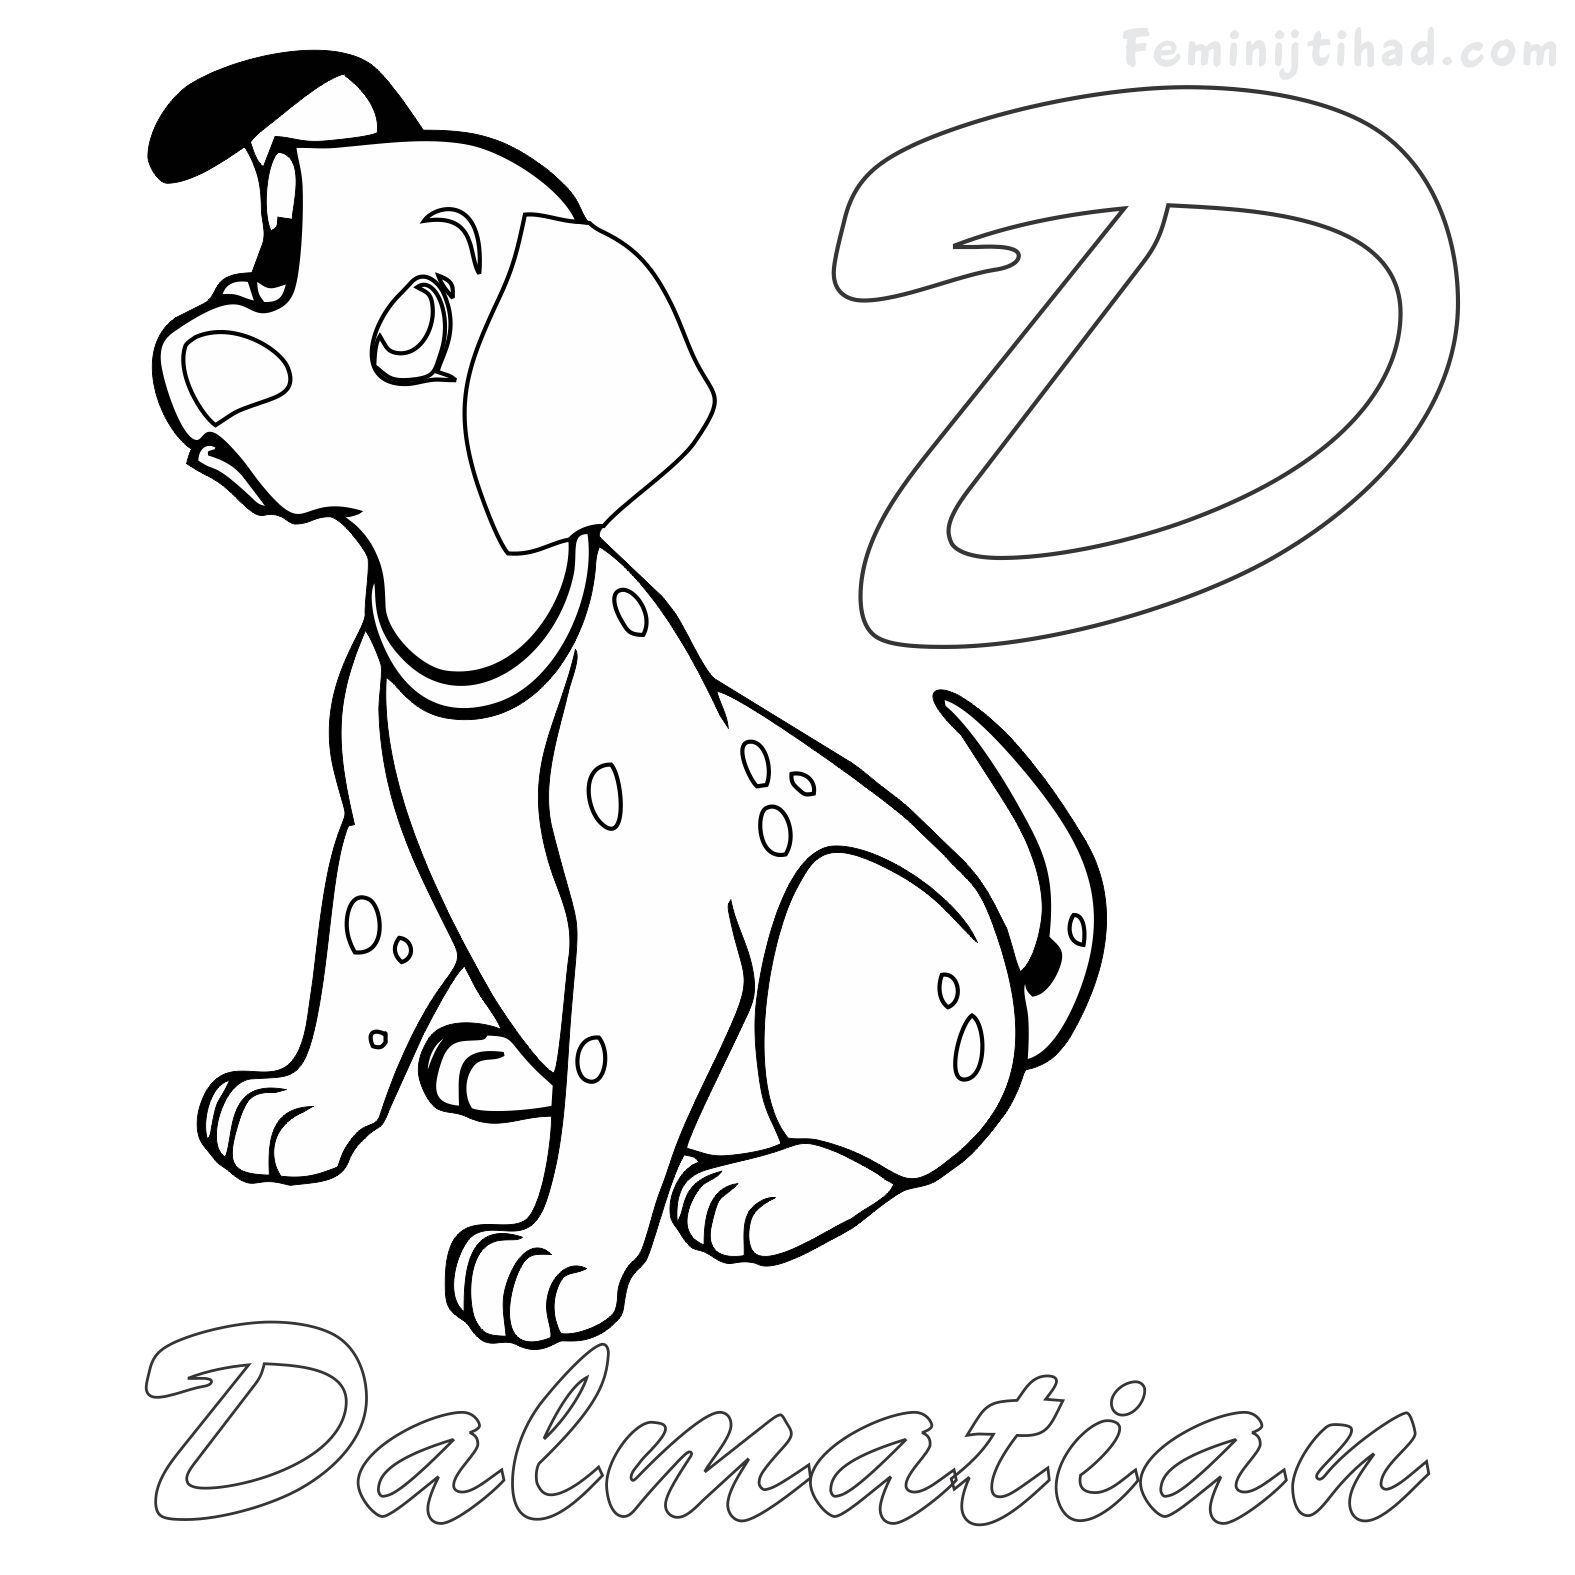 Dalmatian Coloring Pages Pdf For Kids Free Coloring Sheets Puppy Coloring Pages Coloring Pages Paw Patrol Coloring Pages